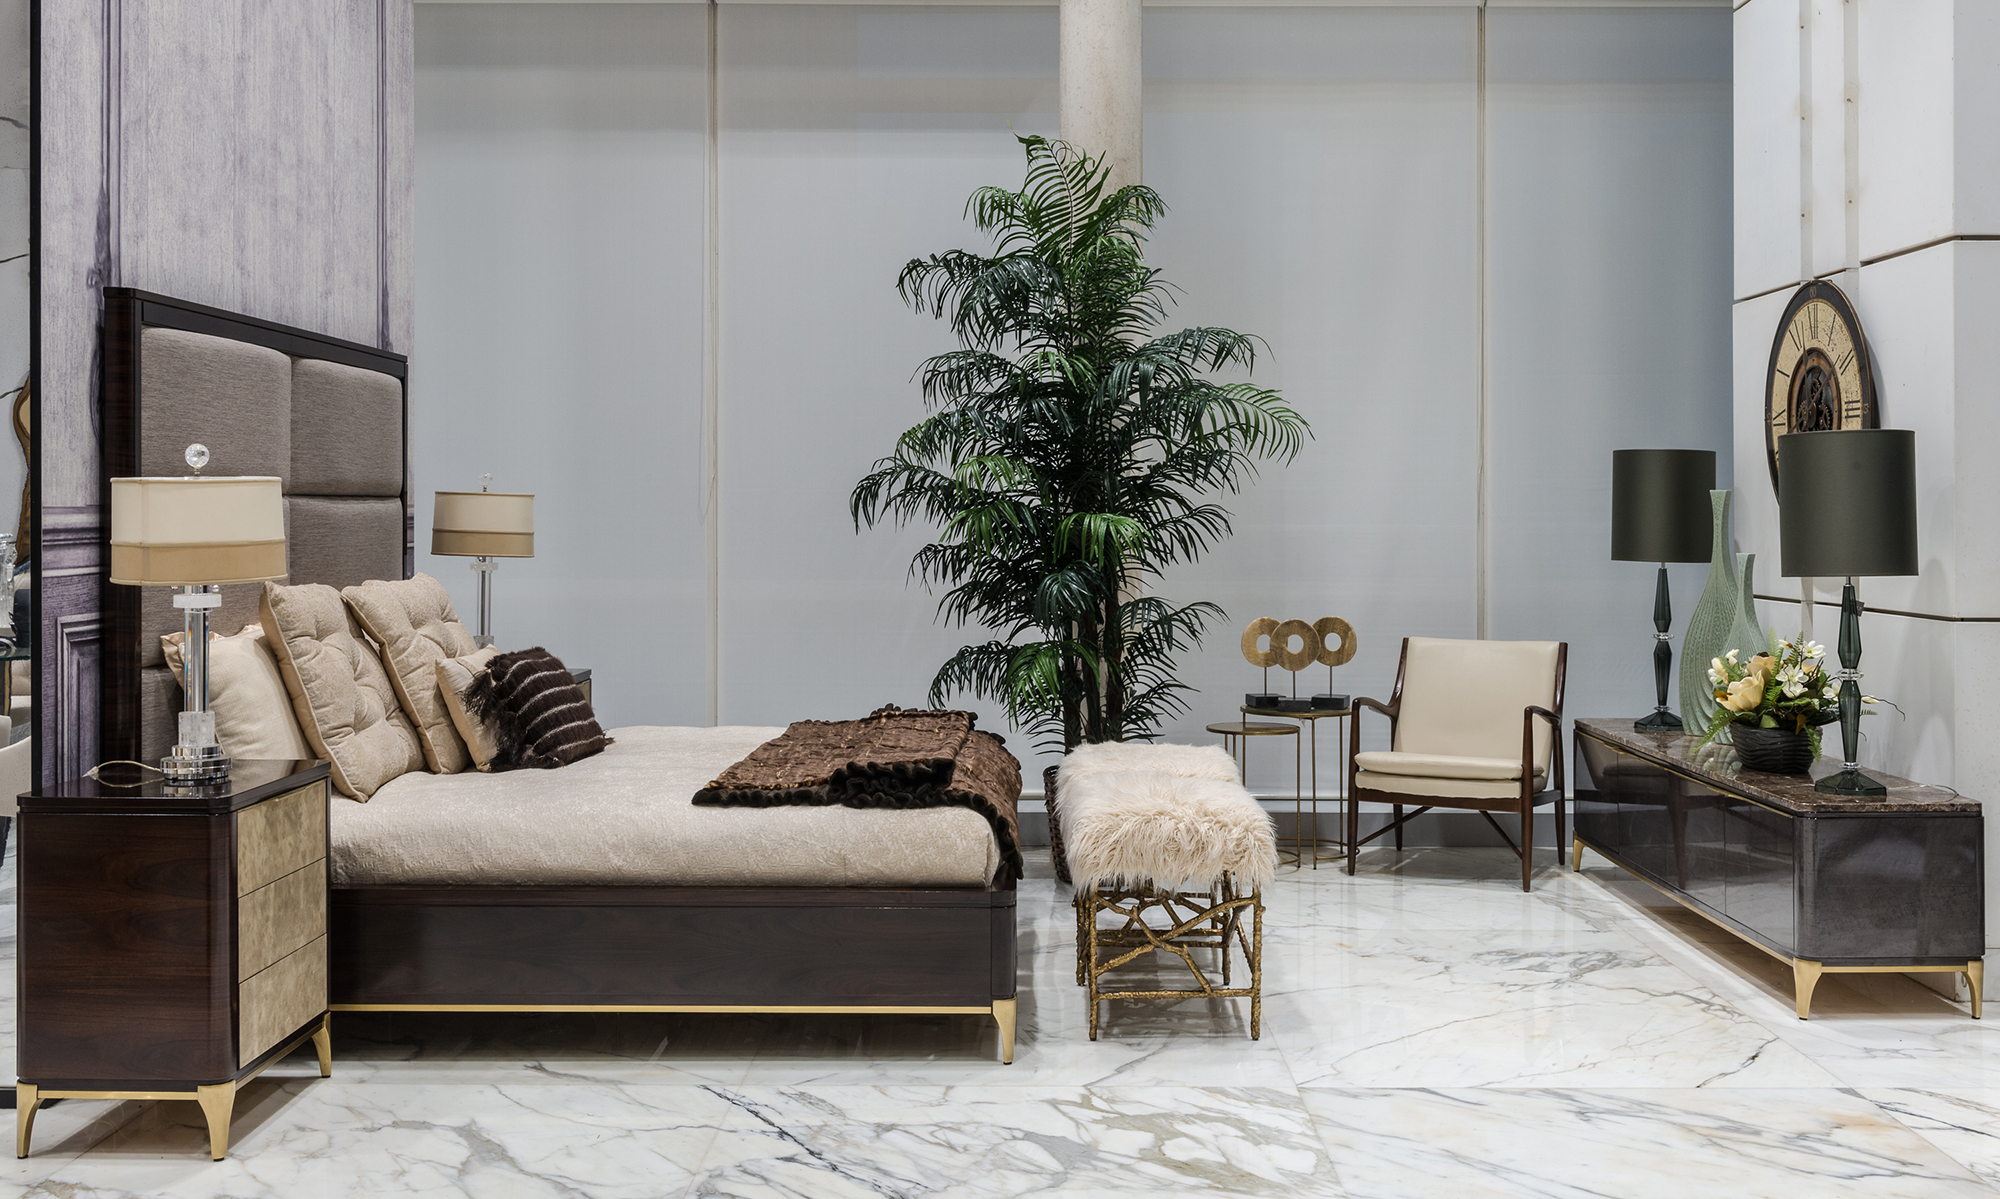 sofa cleaning services mumbai small bed with storage maison by international furniture brands launches flagship